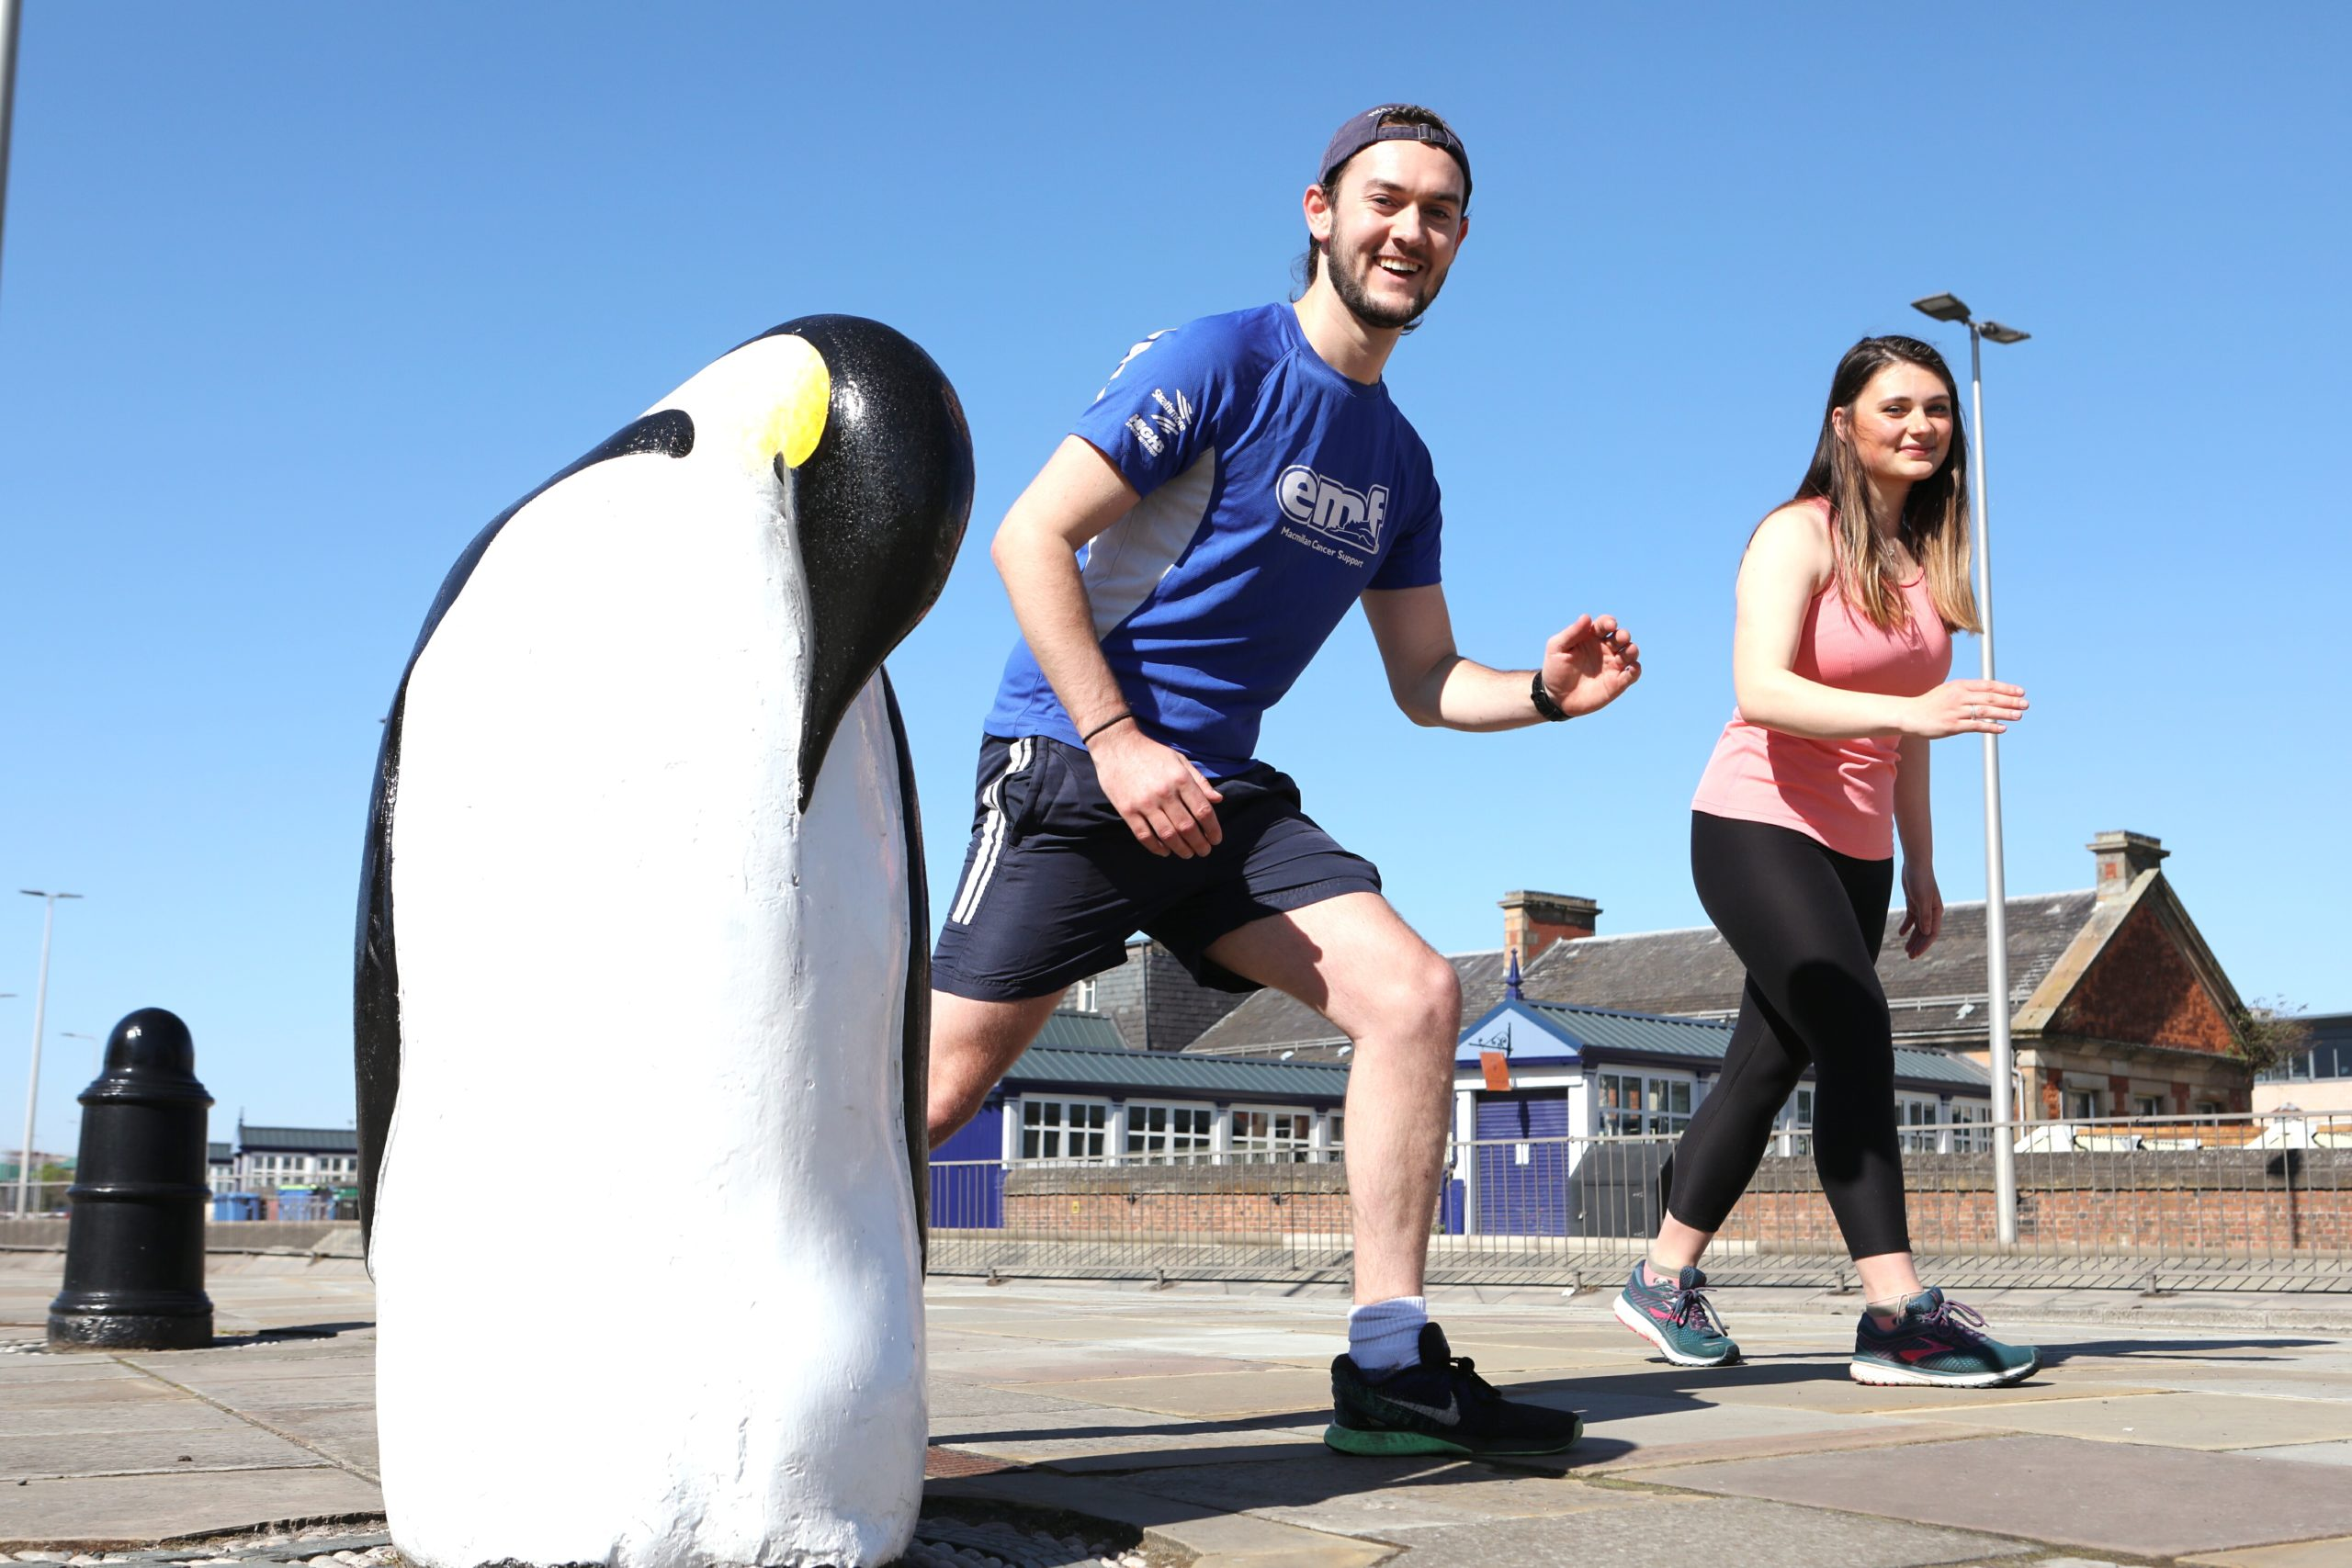 Freya Anderson and Sam Donnelly are among the students who are walking, running or cycling the distance between Dundee and the South Pole to raise money for Age Scotland. (Picture: Gareth Jennings/ DCT Media)